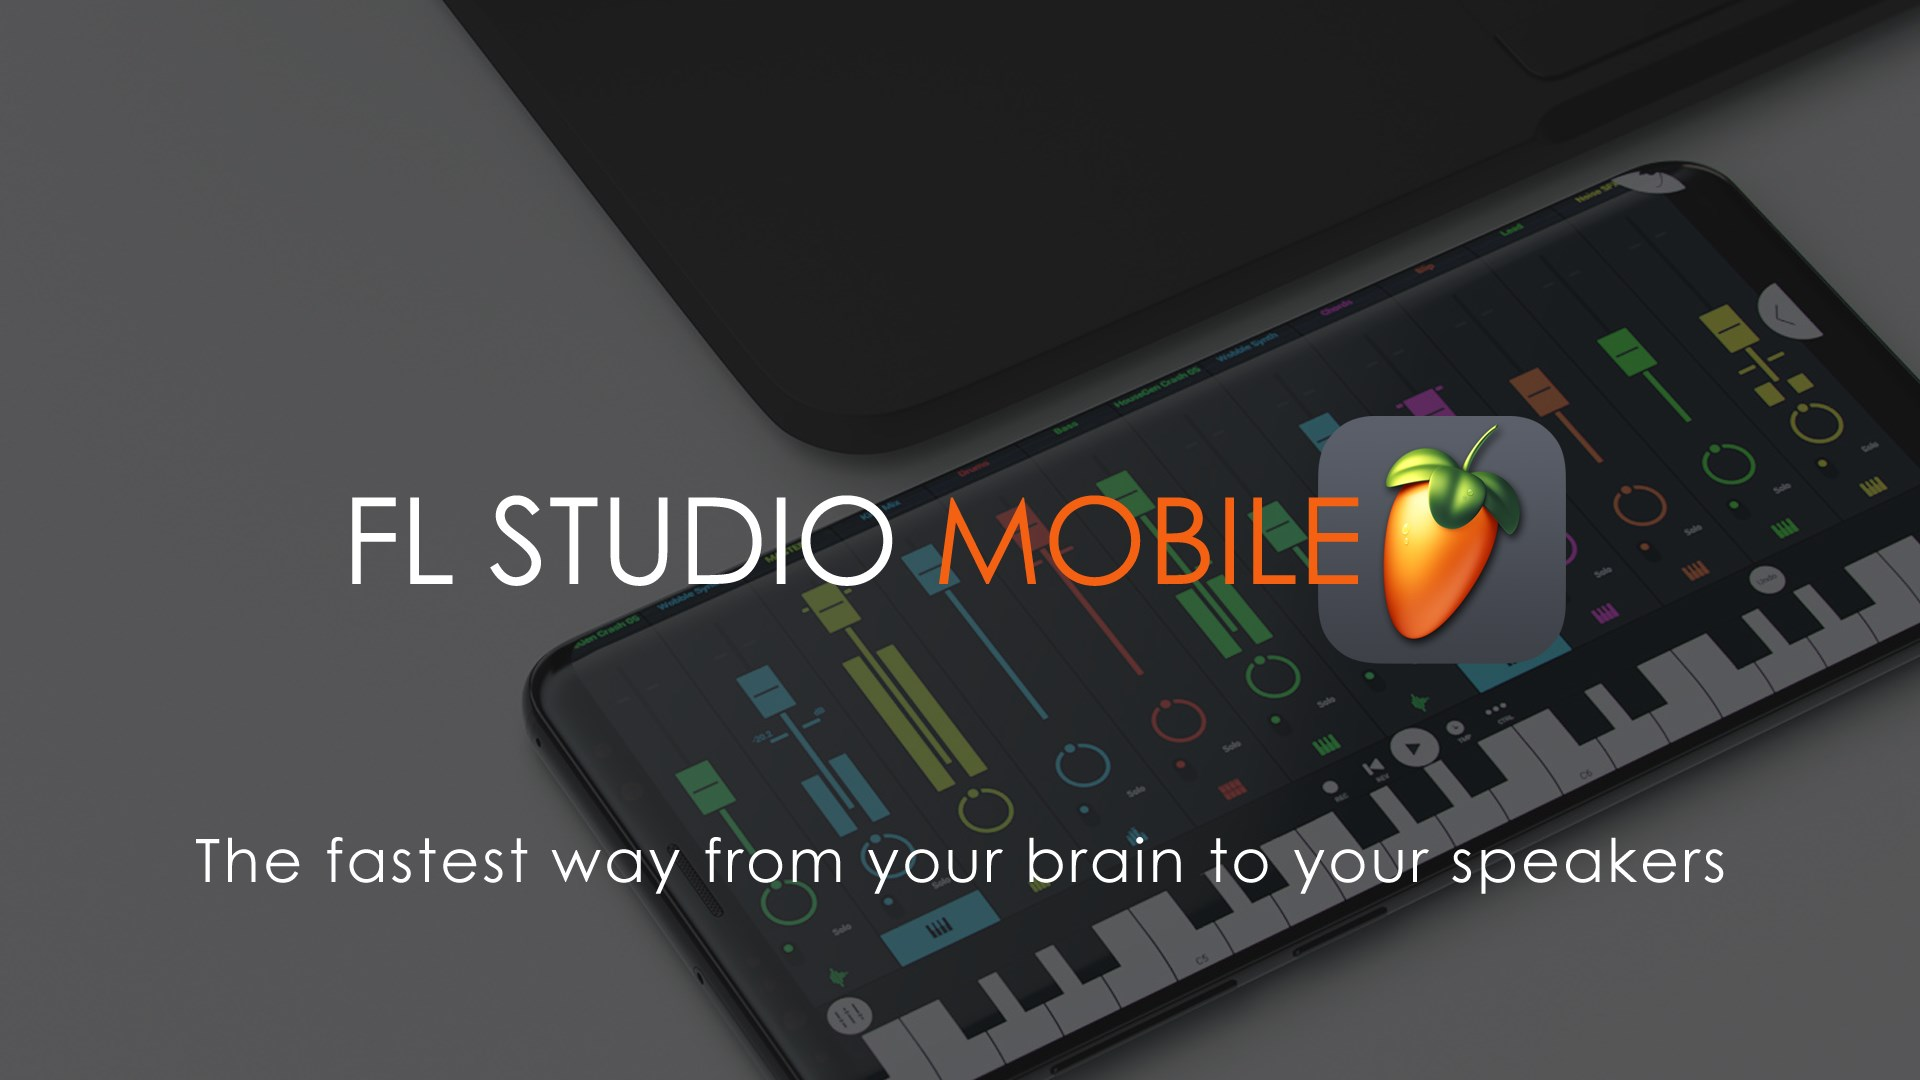 Buy FL Studio Mobile - Microsoft Store